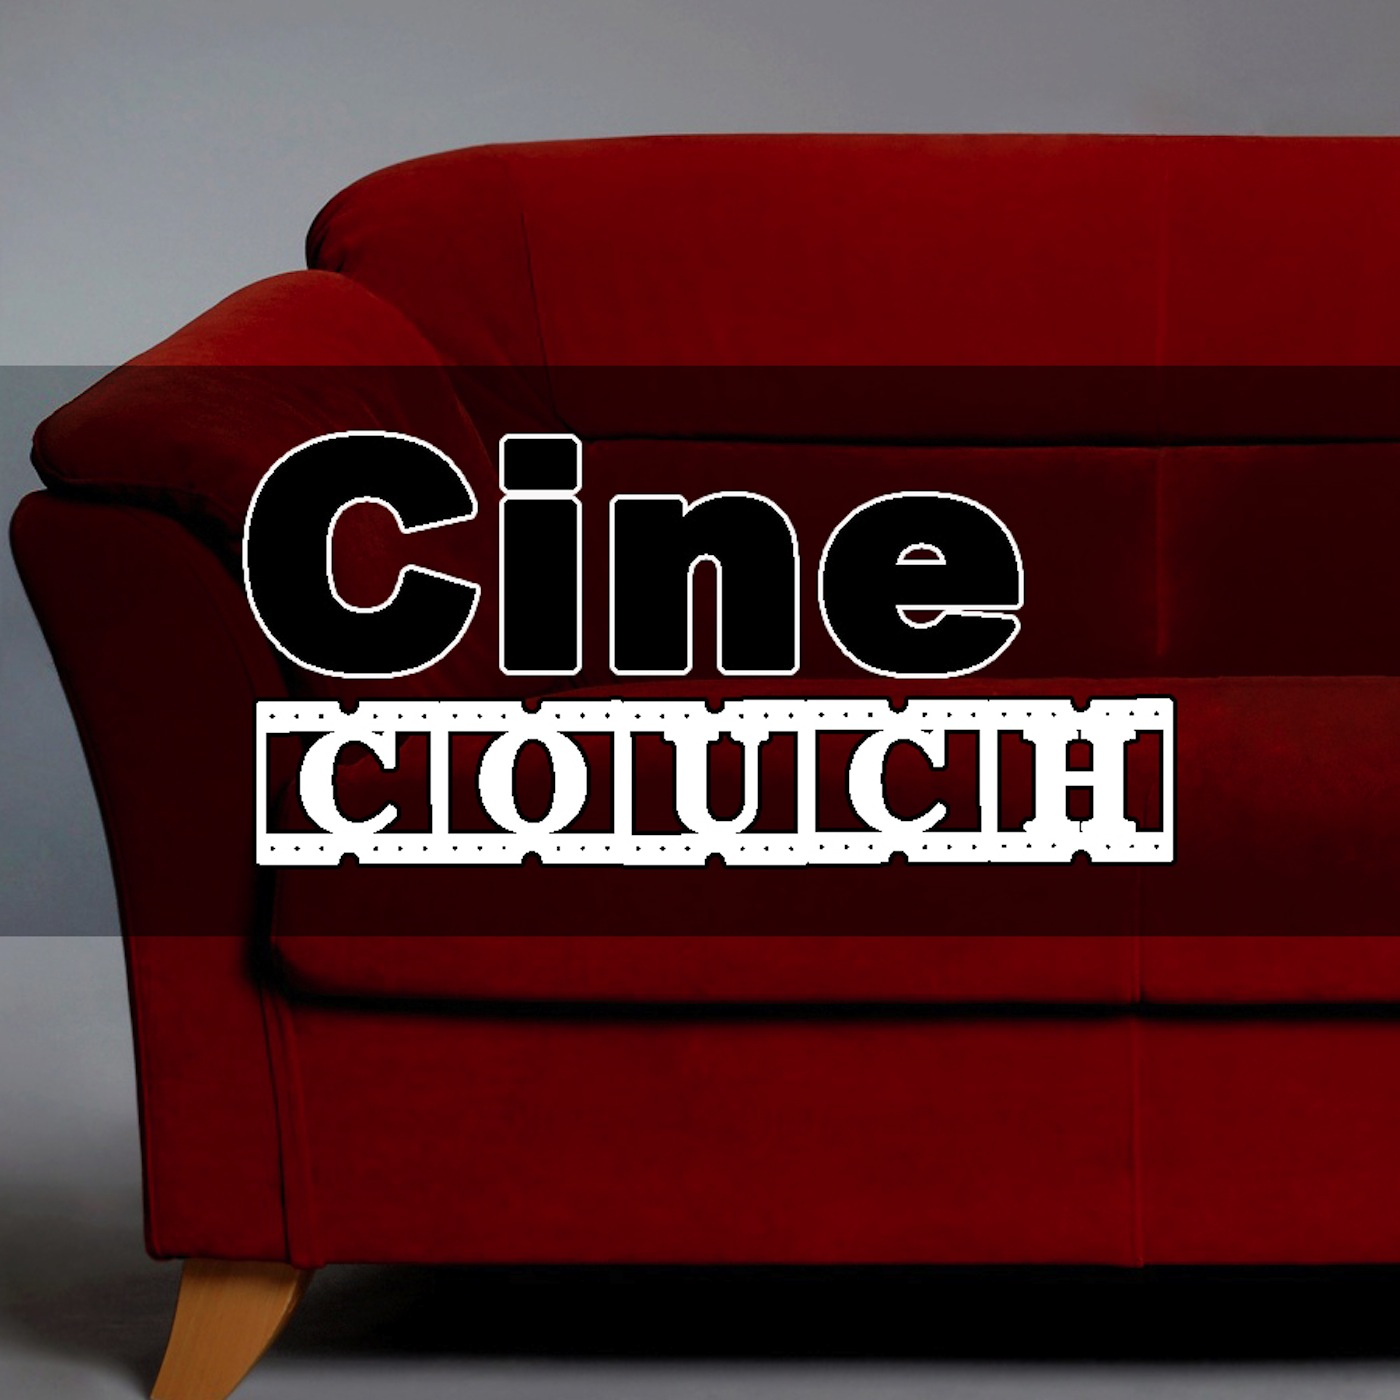 CineCouch – Folge 269: Brokeback Mountain #oWestern